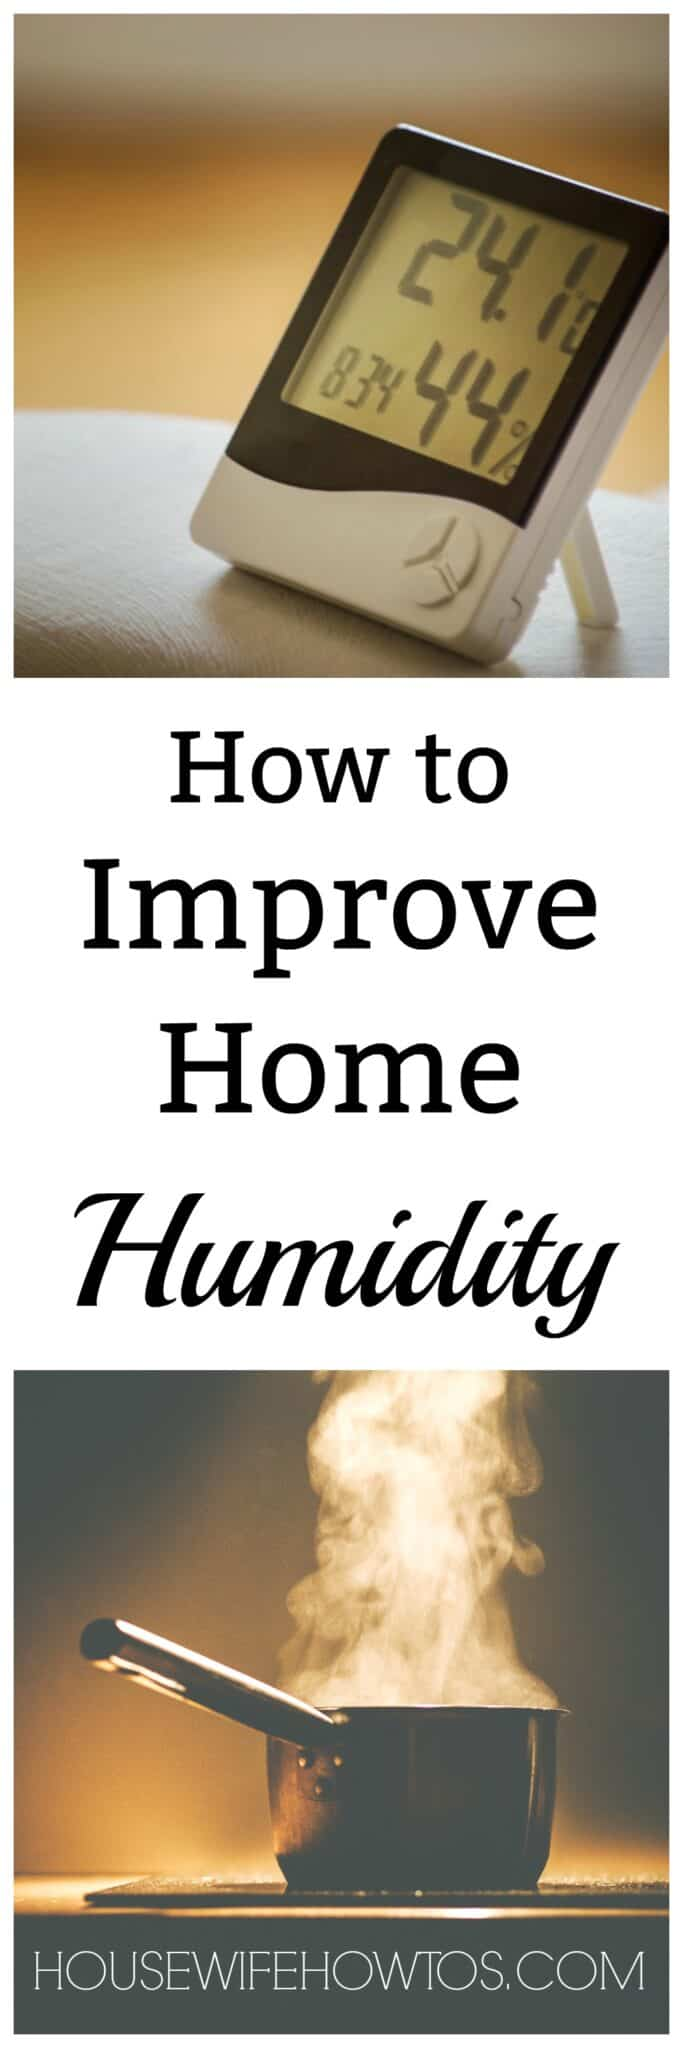 How to Improve Home Humidity - Stop static in the winter and mildew in the summer with these tips. #homehumidity #humidity #homemaintenance #indoorair #static #staticcling #staticelectricity #mildew #mold